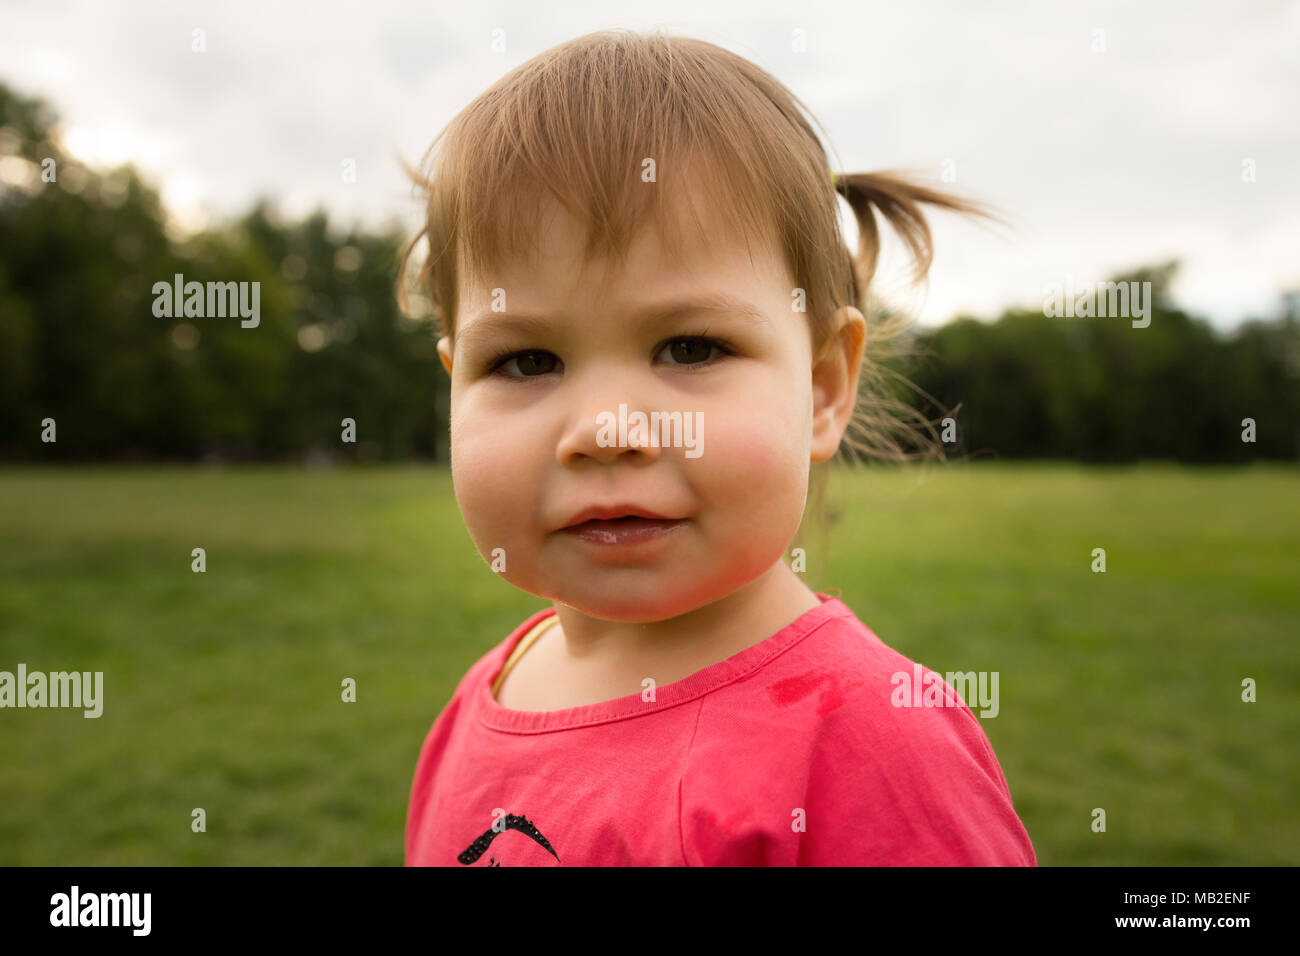 Cute Little toddler girl in pink dress playing in park in front of green grass - Stock Image